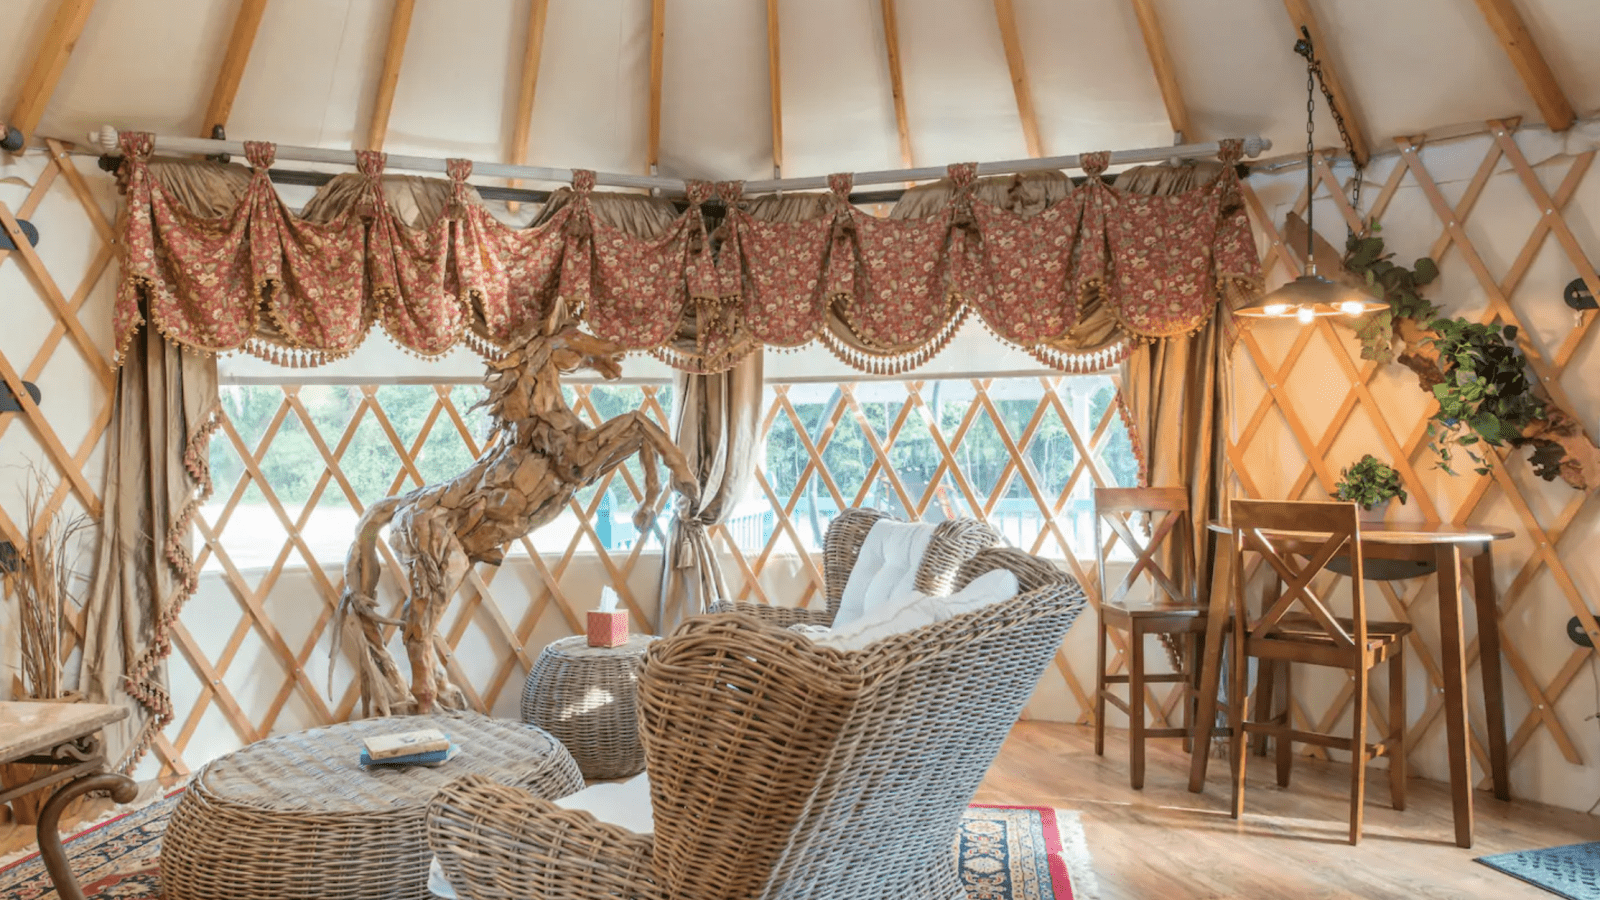 The beautiful Yurt at Donville.